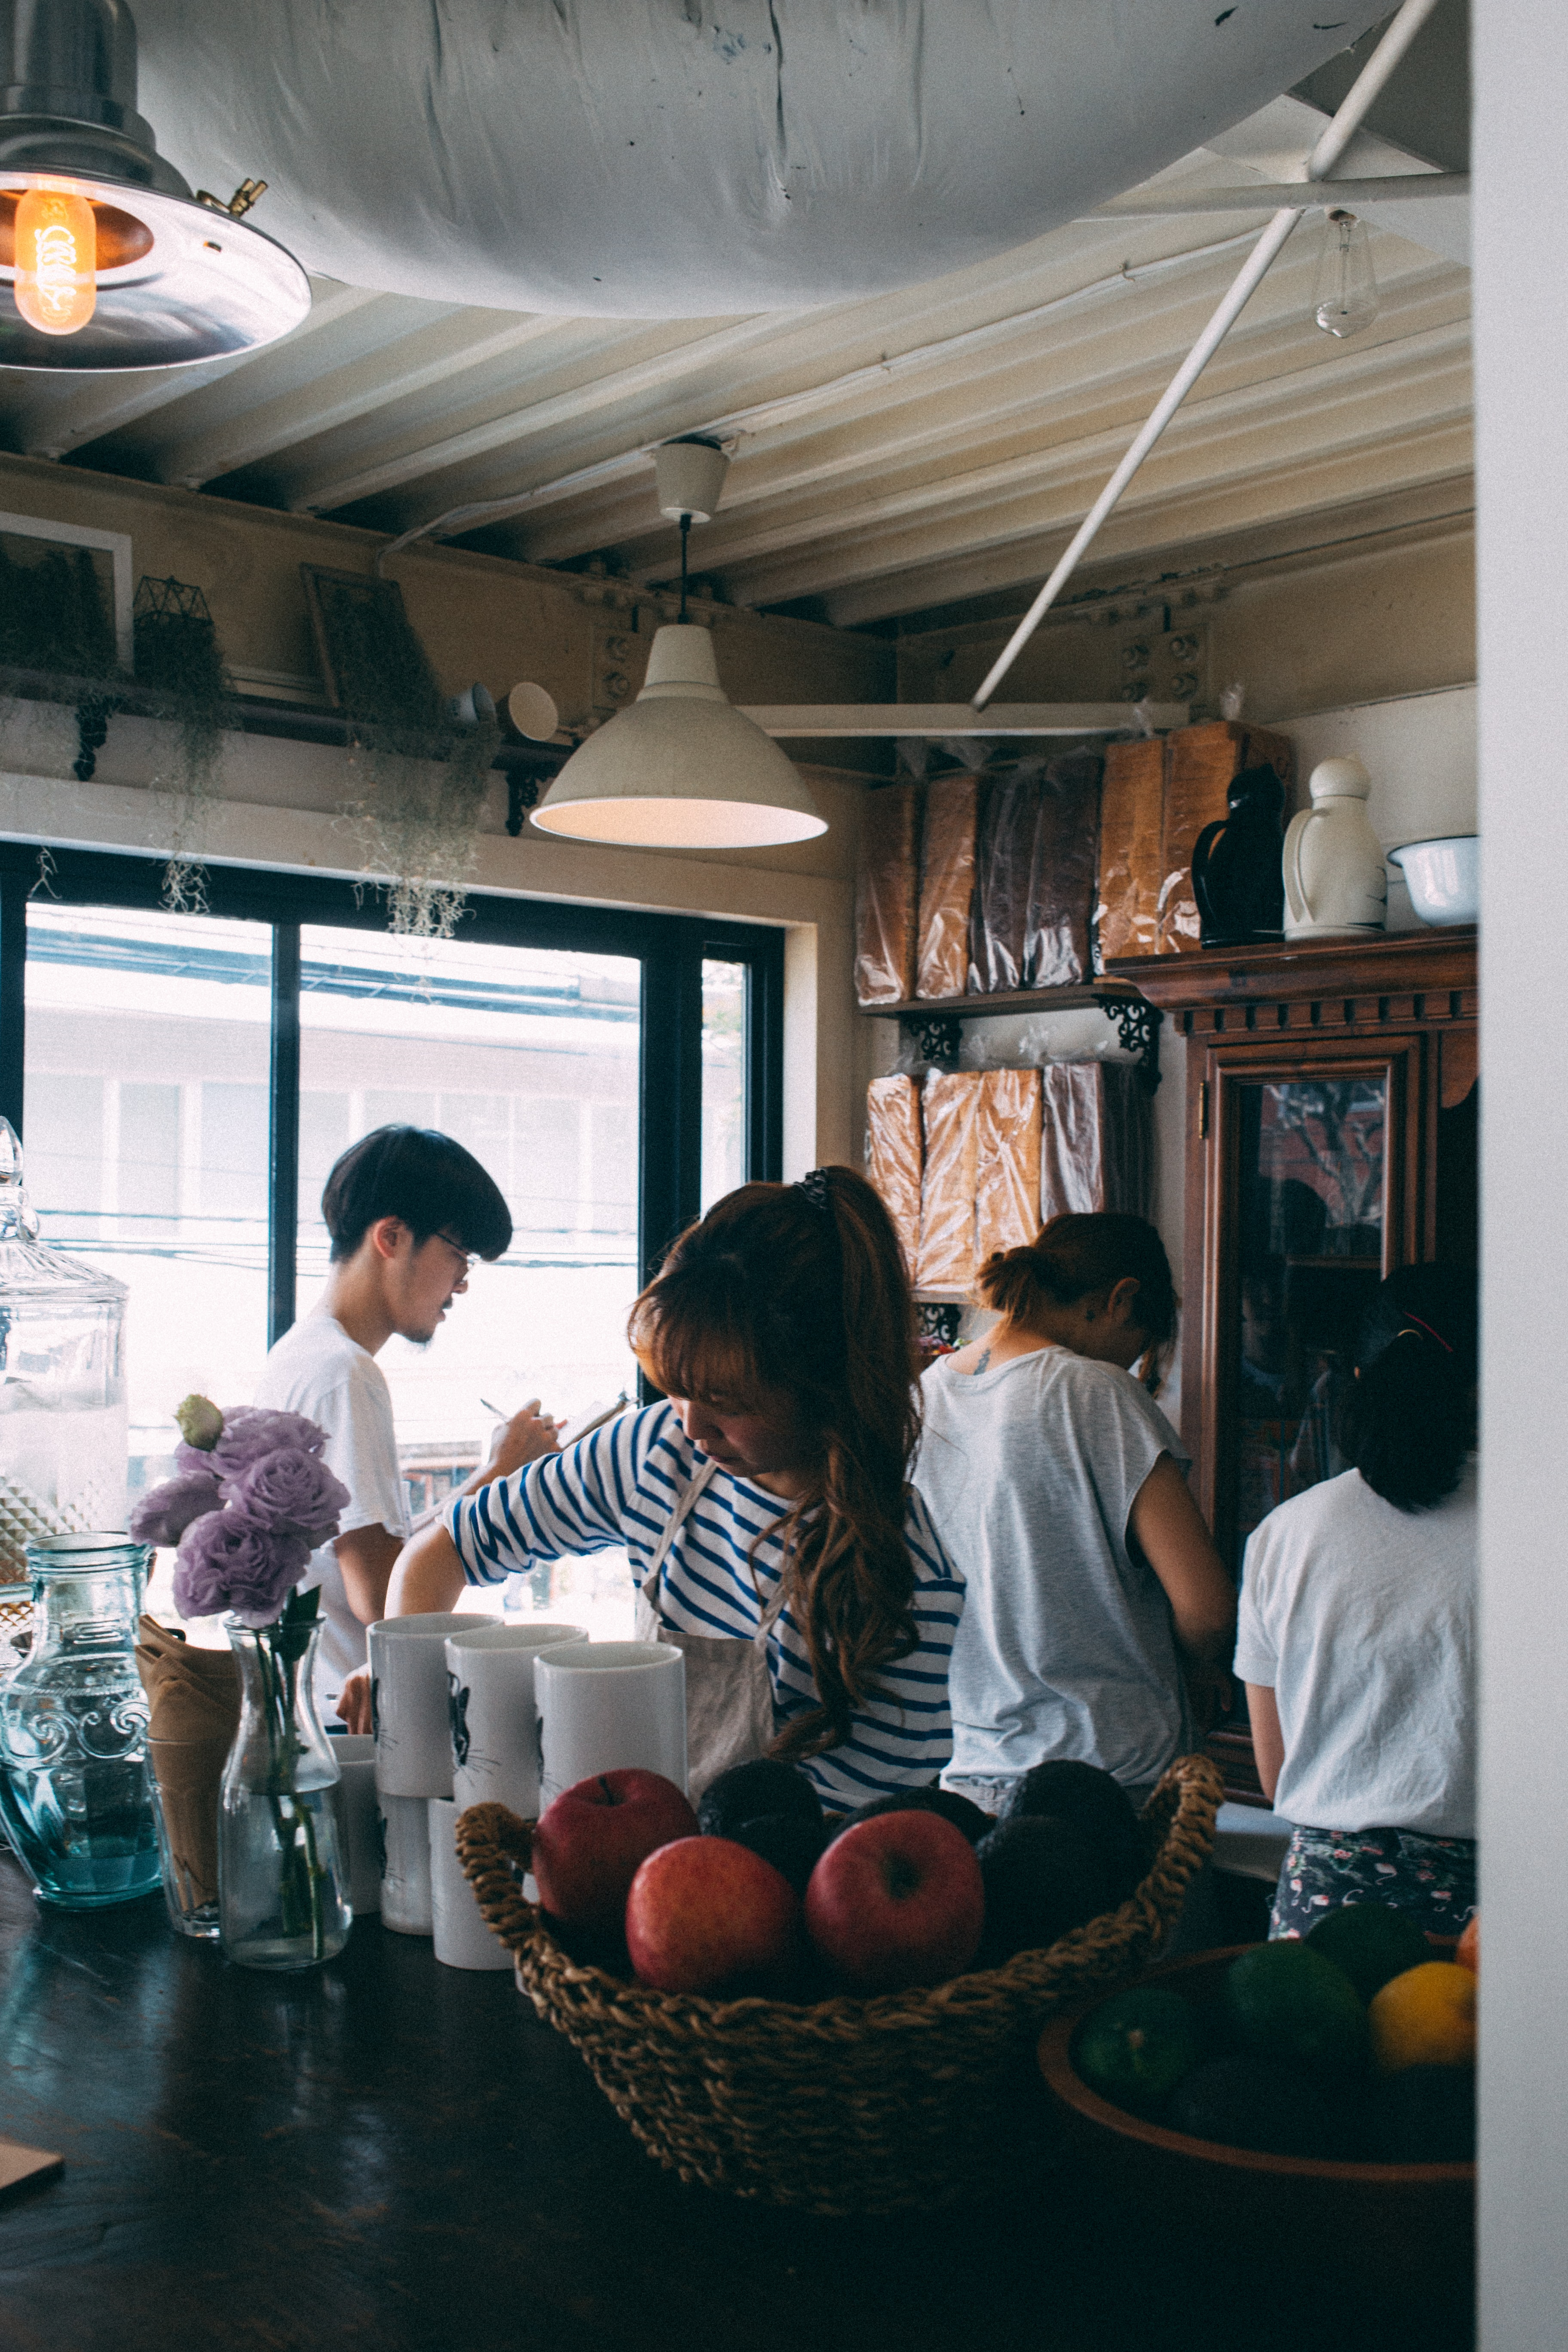 Asians prepping food.